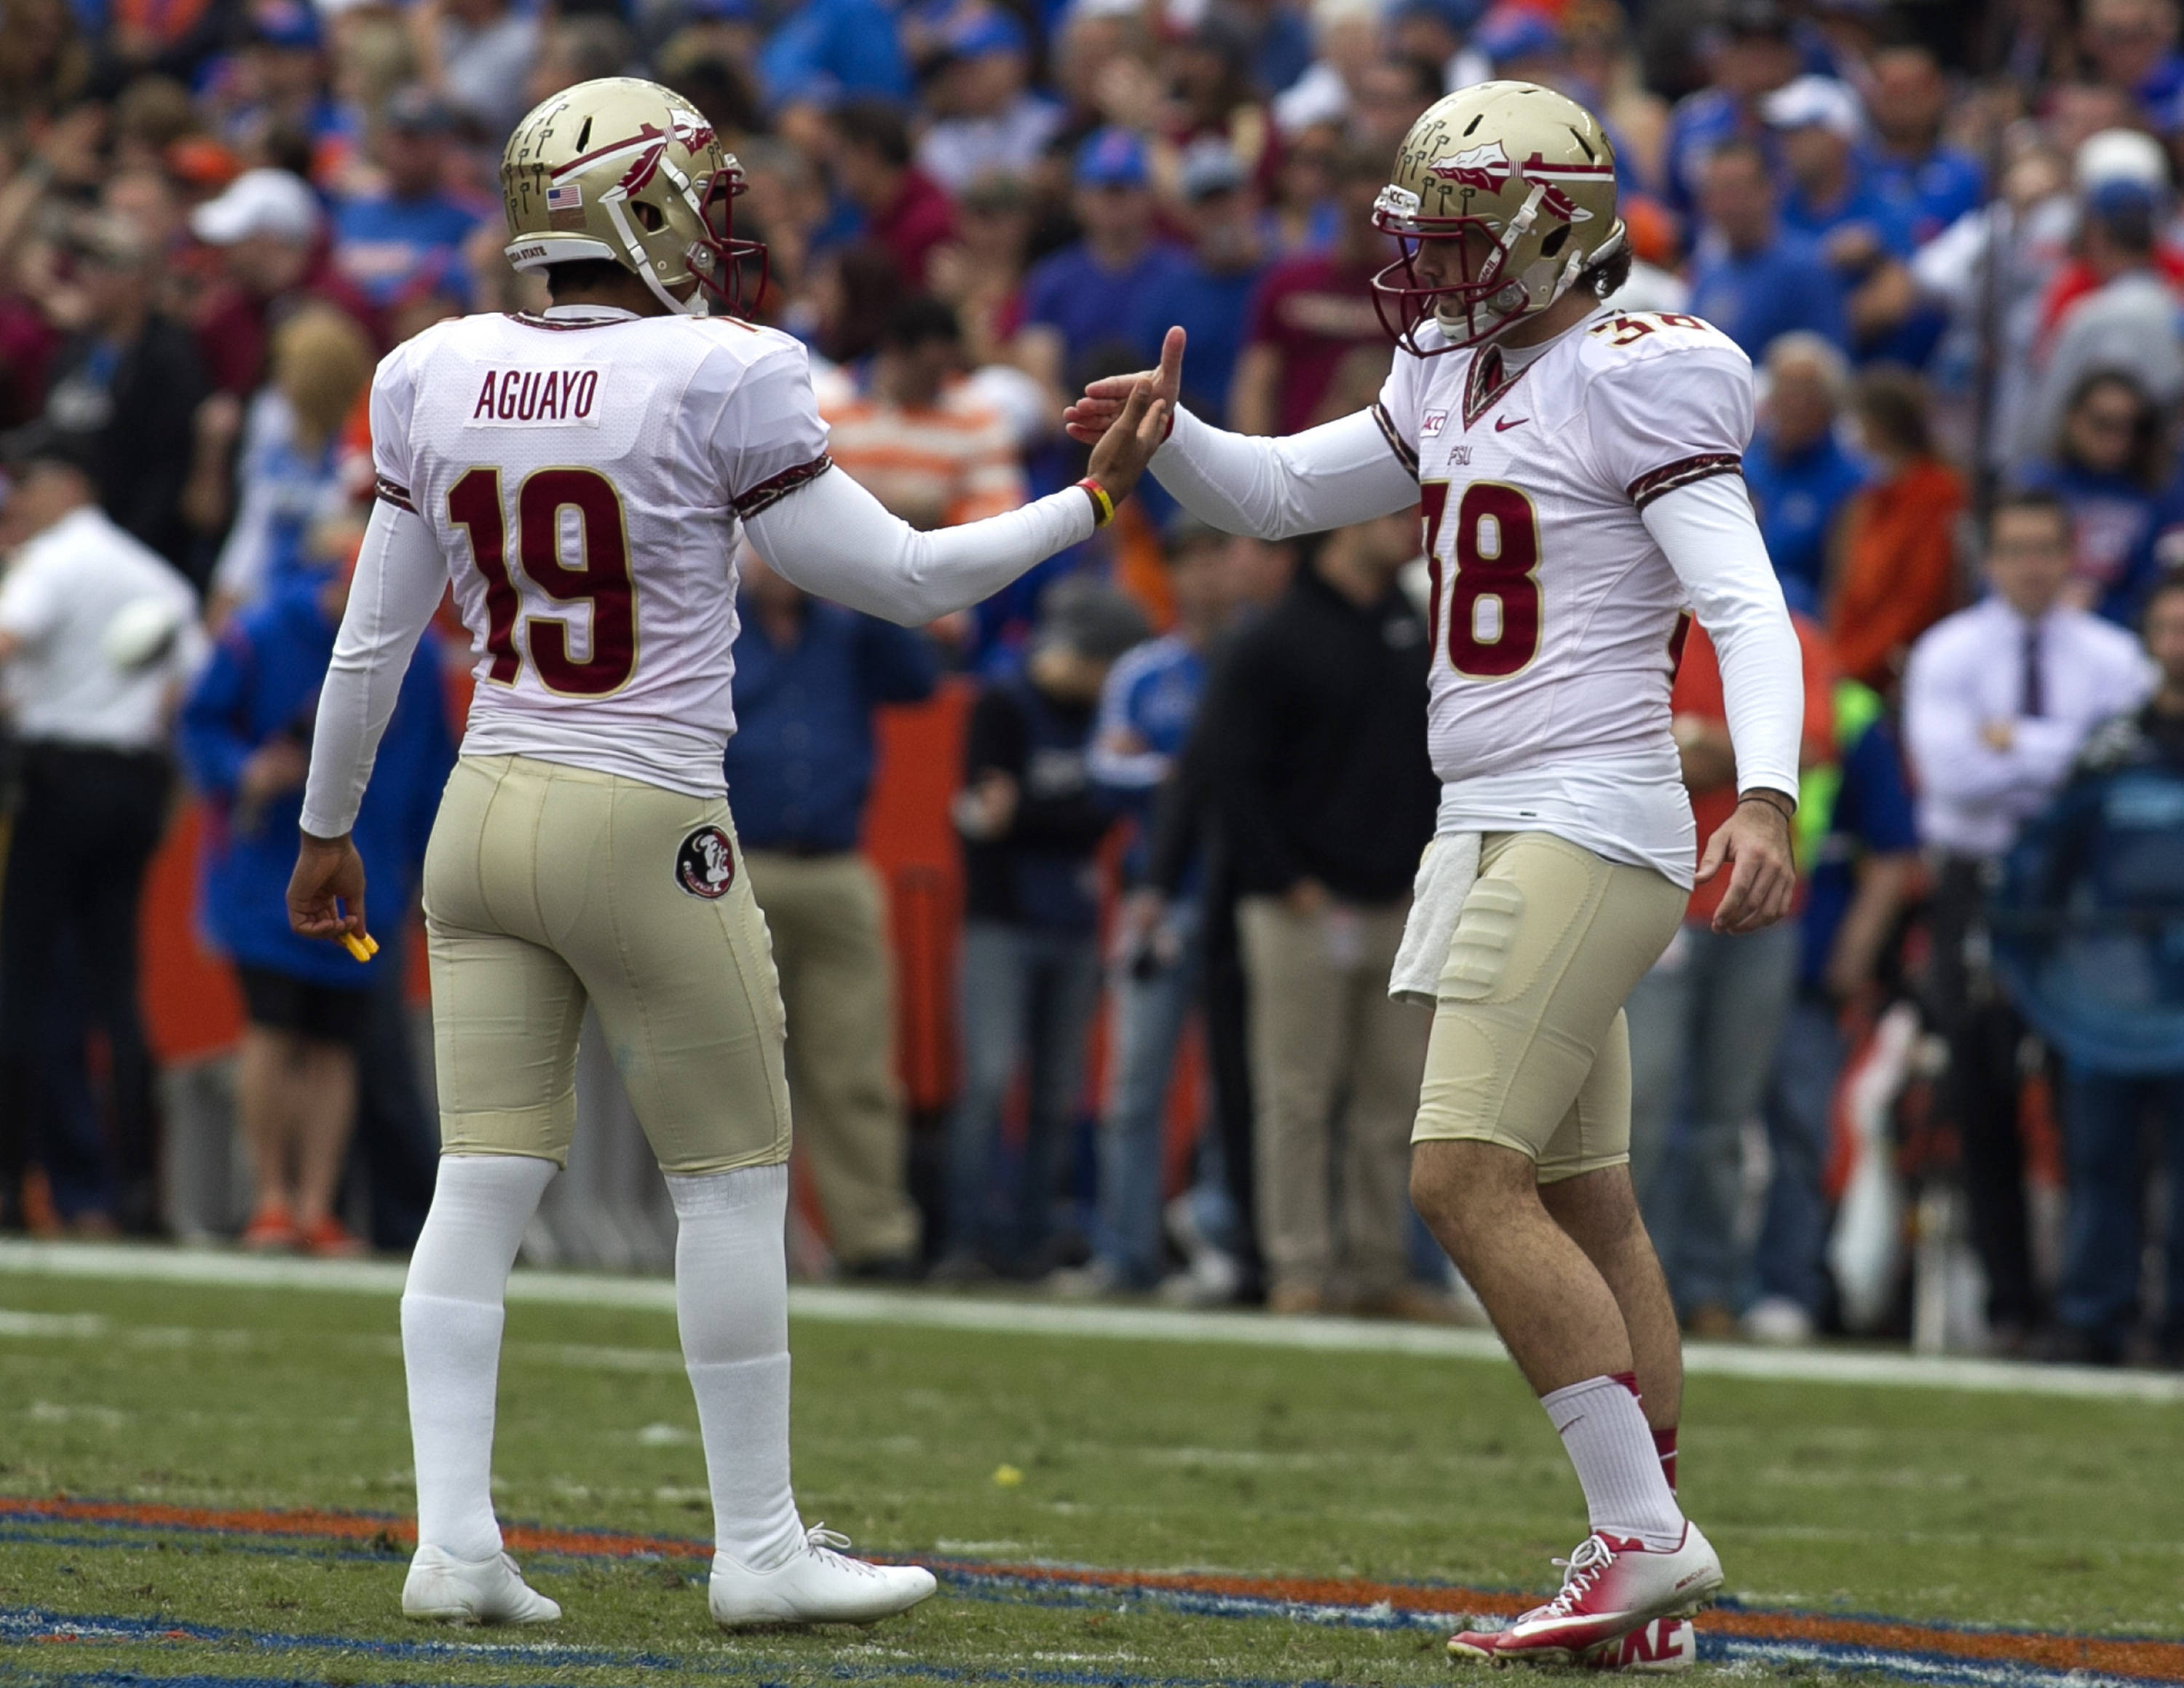 Roberto Aguayo (19) and Cason Beatty (38) celebrate Aguayo's 50 yard field goal, FSU vs Florida, 11-30-13,  (Photo by Steve Musco)